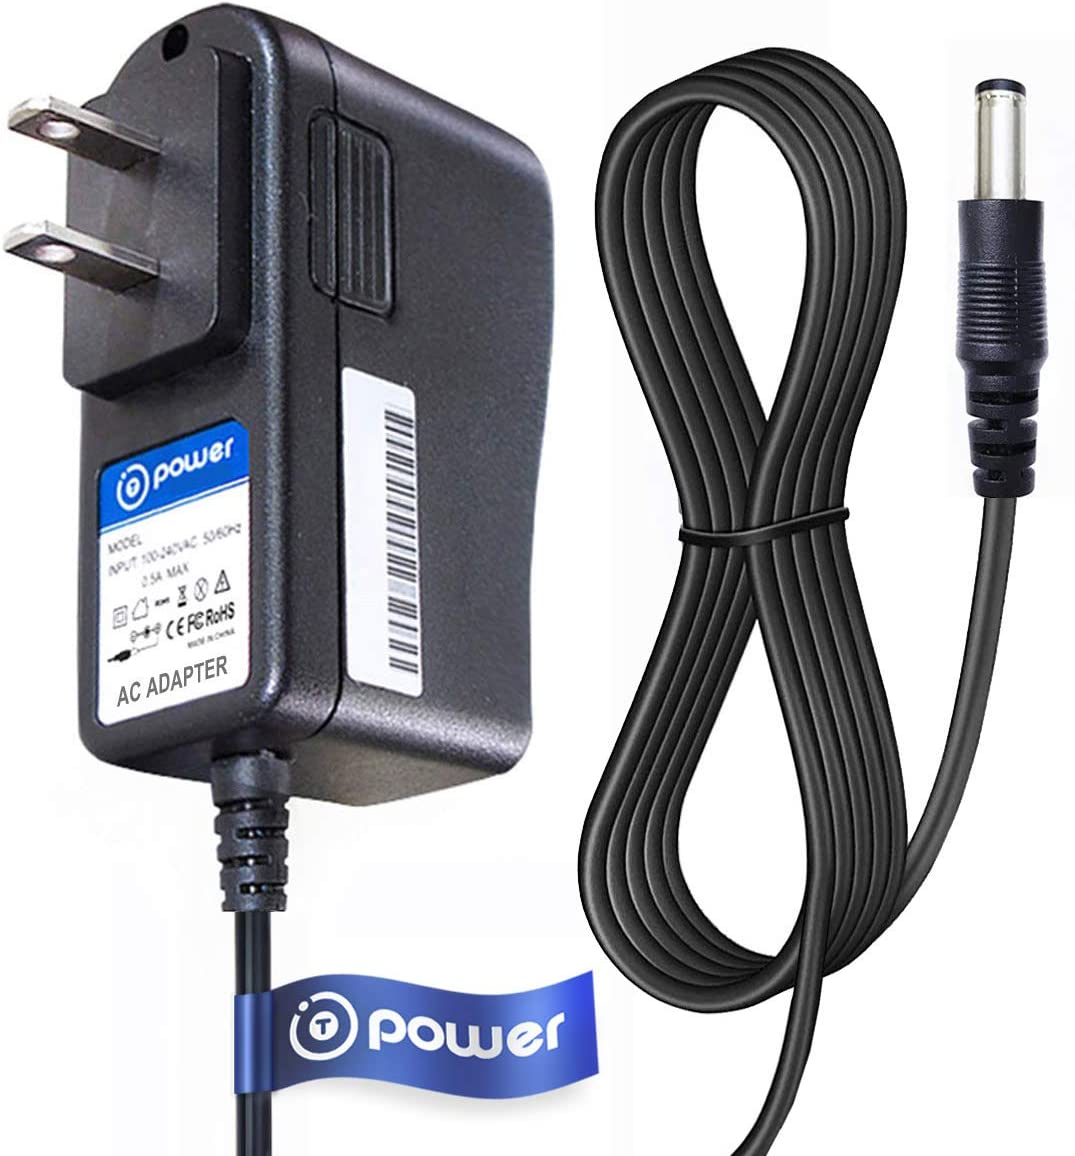 T POWER 9V Ac Dc Adapter Charger Compatible with Kohler Malleco Touchless Faucet R77748 K-R77748-SD K-R77748 K-R31498-NA K-R31498 Power Supply